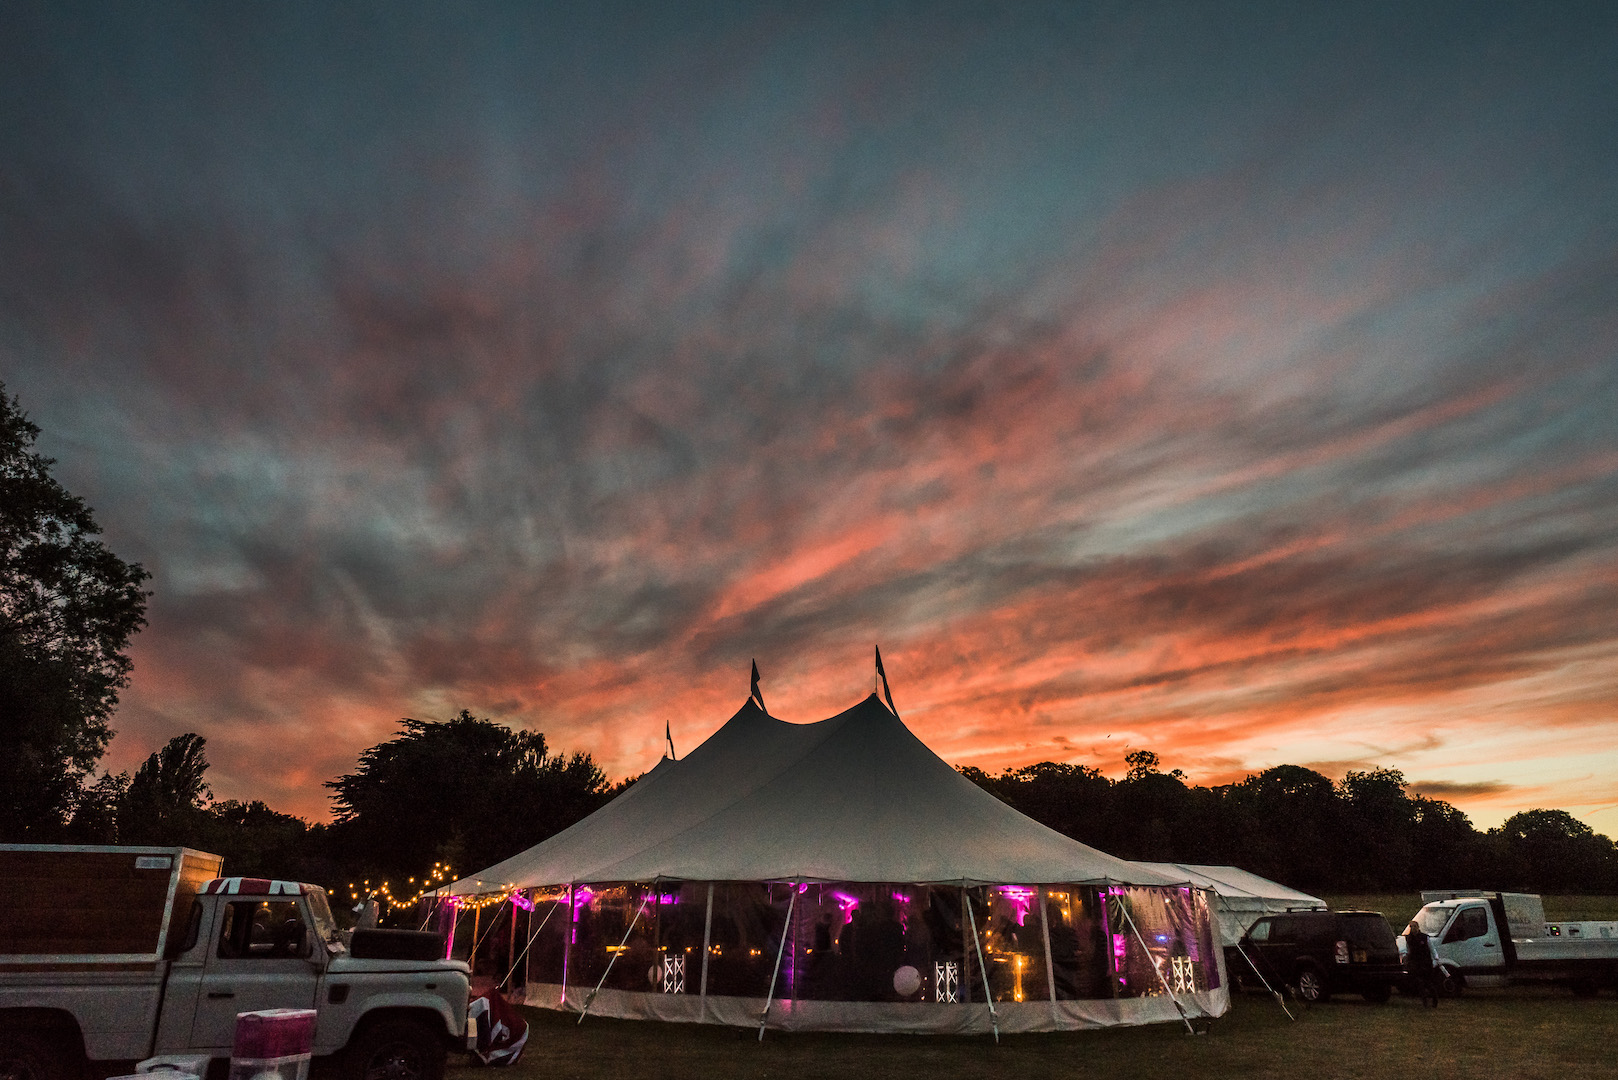 Sarah and Joe's PapaKata Sperry Wedding: Sperry tent night exterior by Paul Mockford Photography